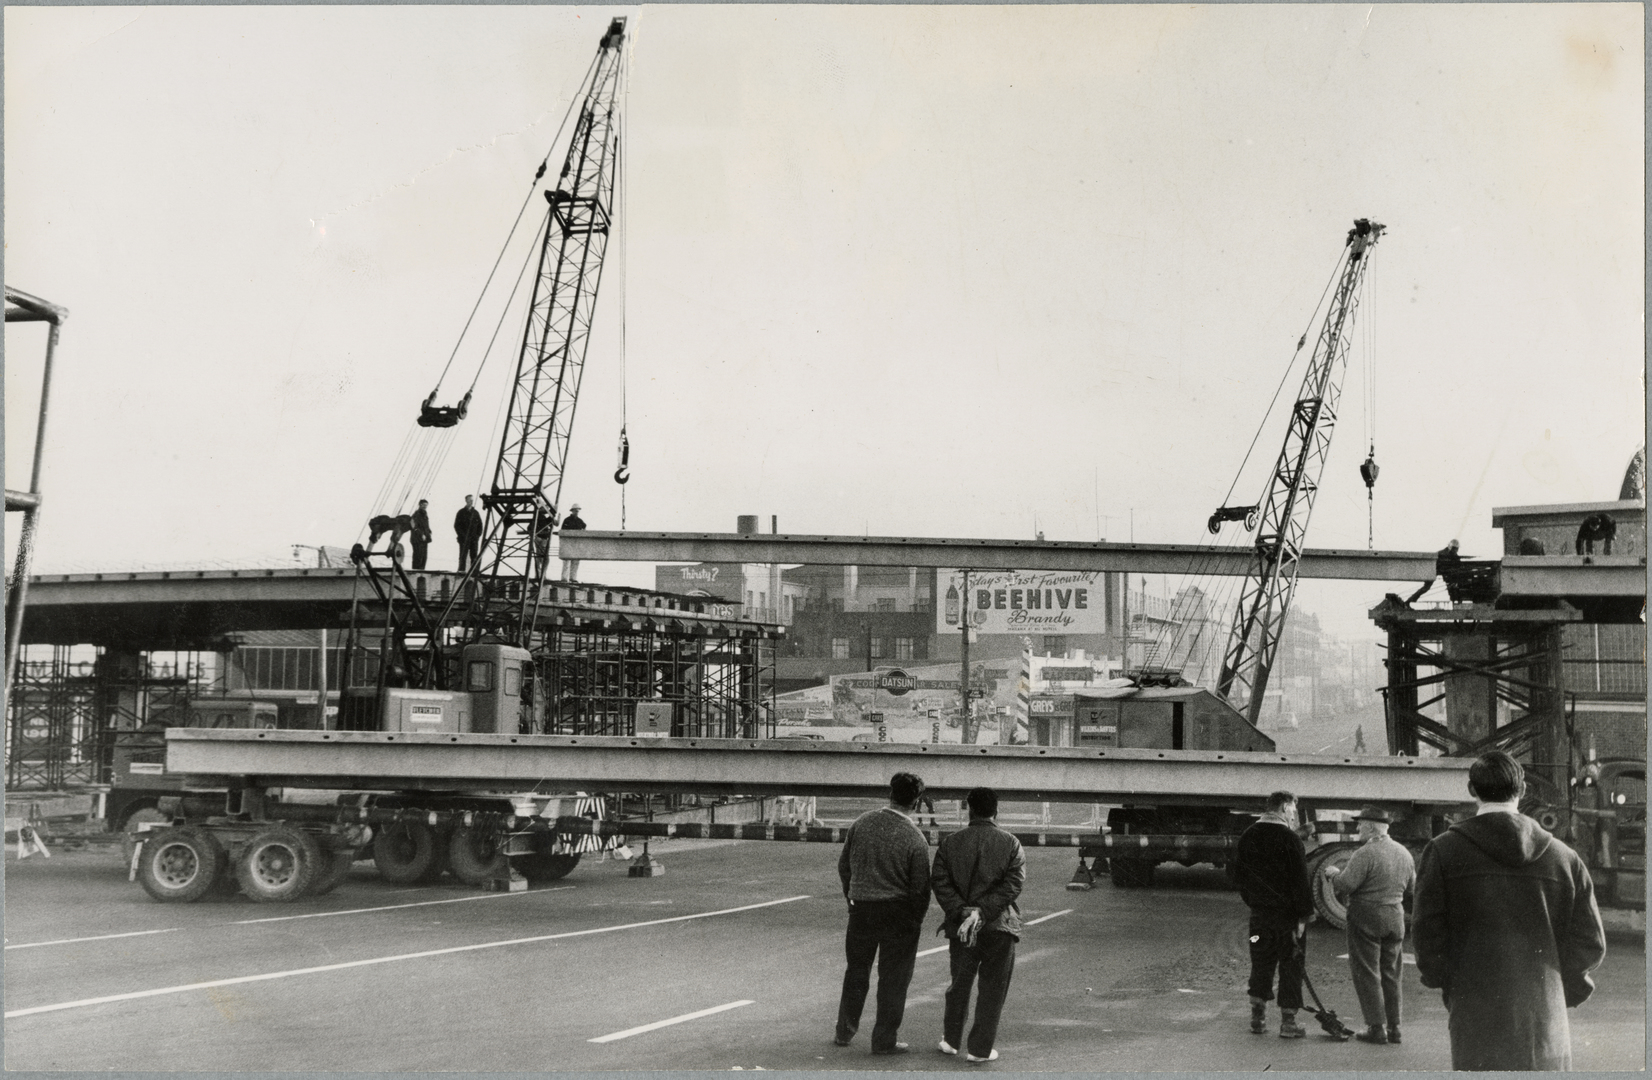 Black and white photograph of workers watching cranes manoeuvre large concrete girder